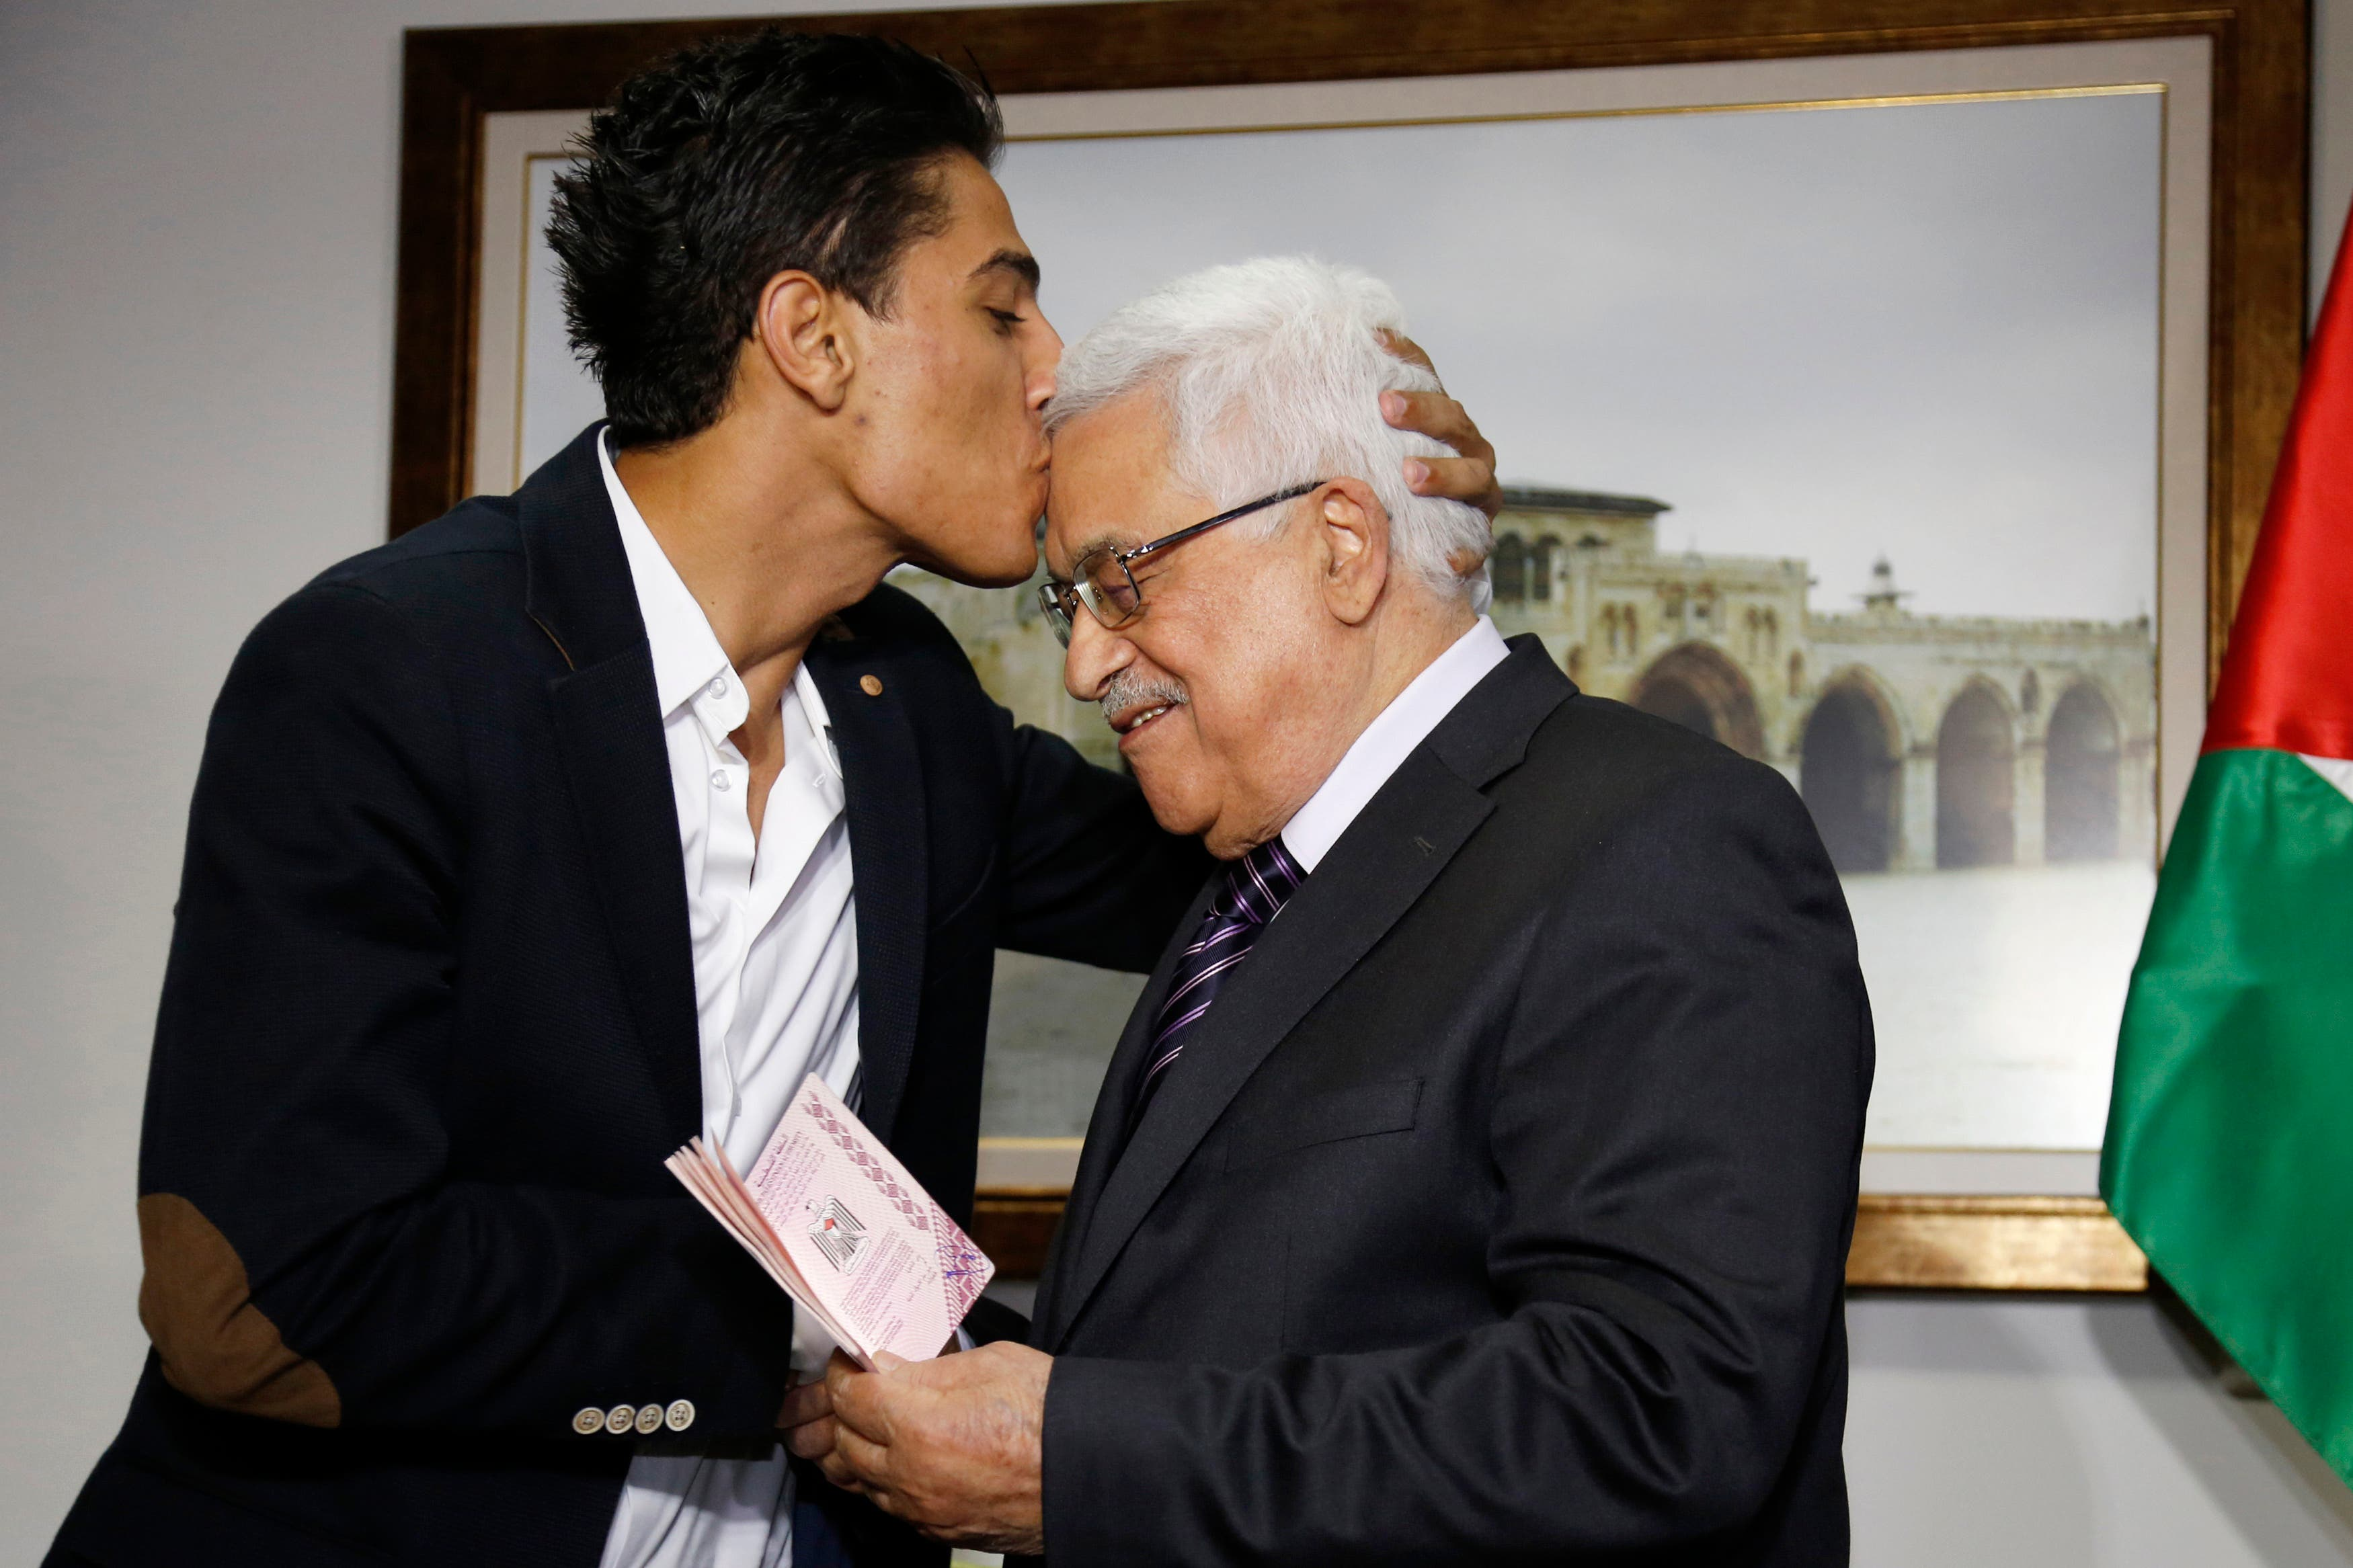 Arab Idol Mohammed Assaf, left, kisses Palestinian President Mahmoud Abbas as he hands him a diplomatic Palestinian Authority passport during their meeting in the West Bank city of Ramallah, Monday, July 1, 2013.  (AP)